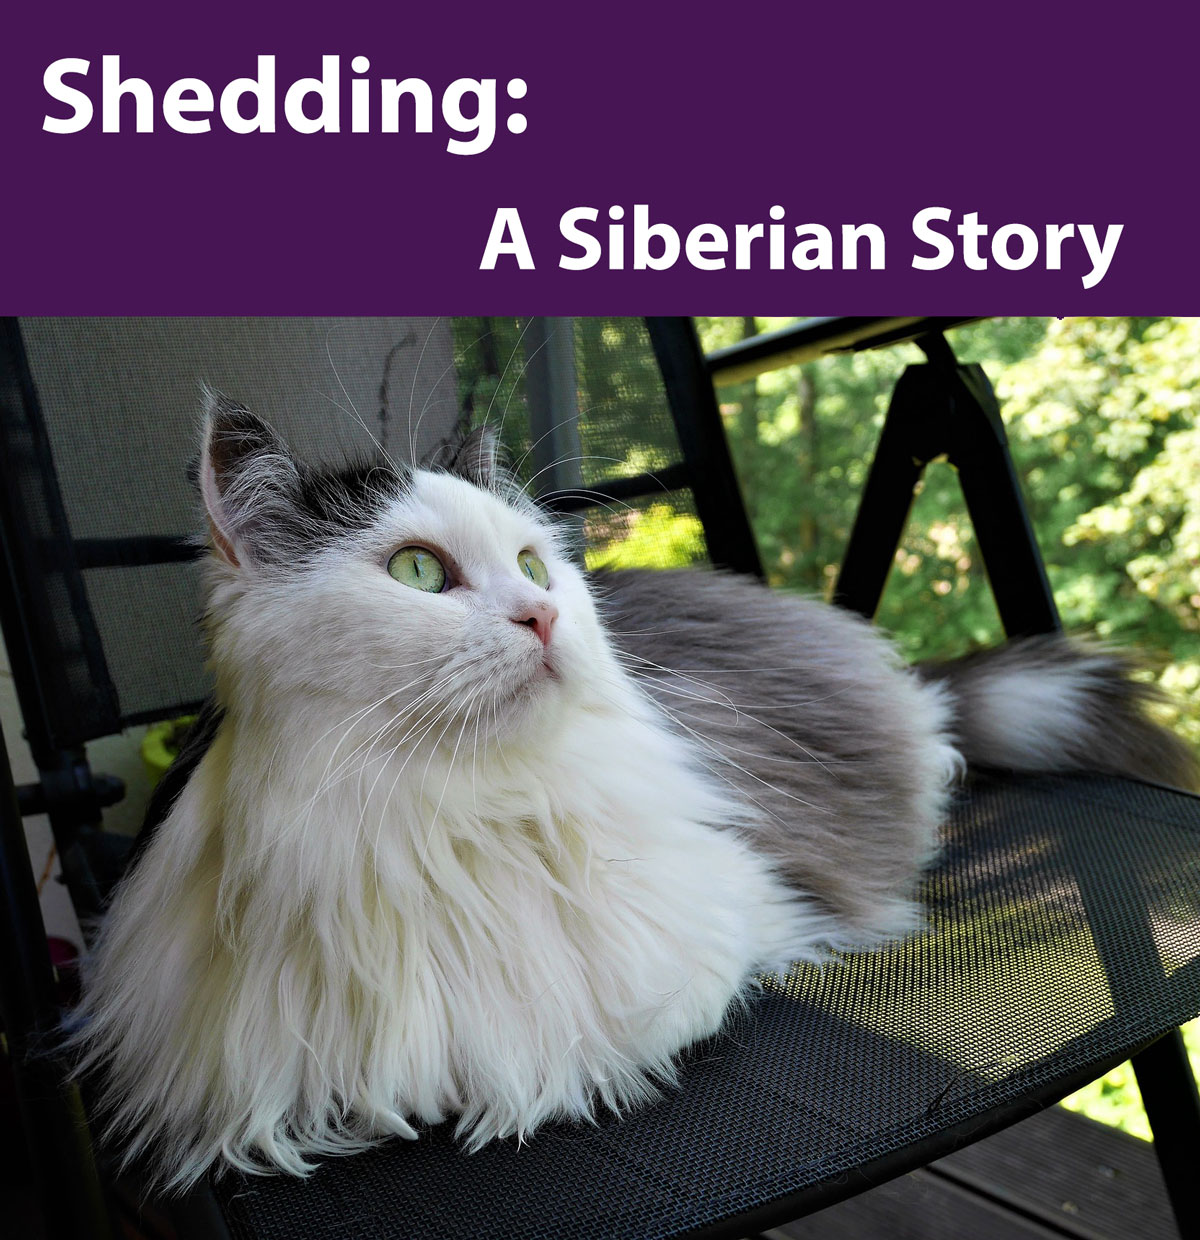 Siberian Cats and Shedding - Siberian Cats